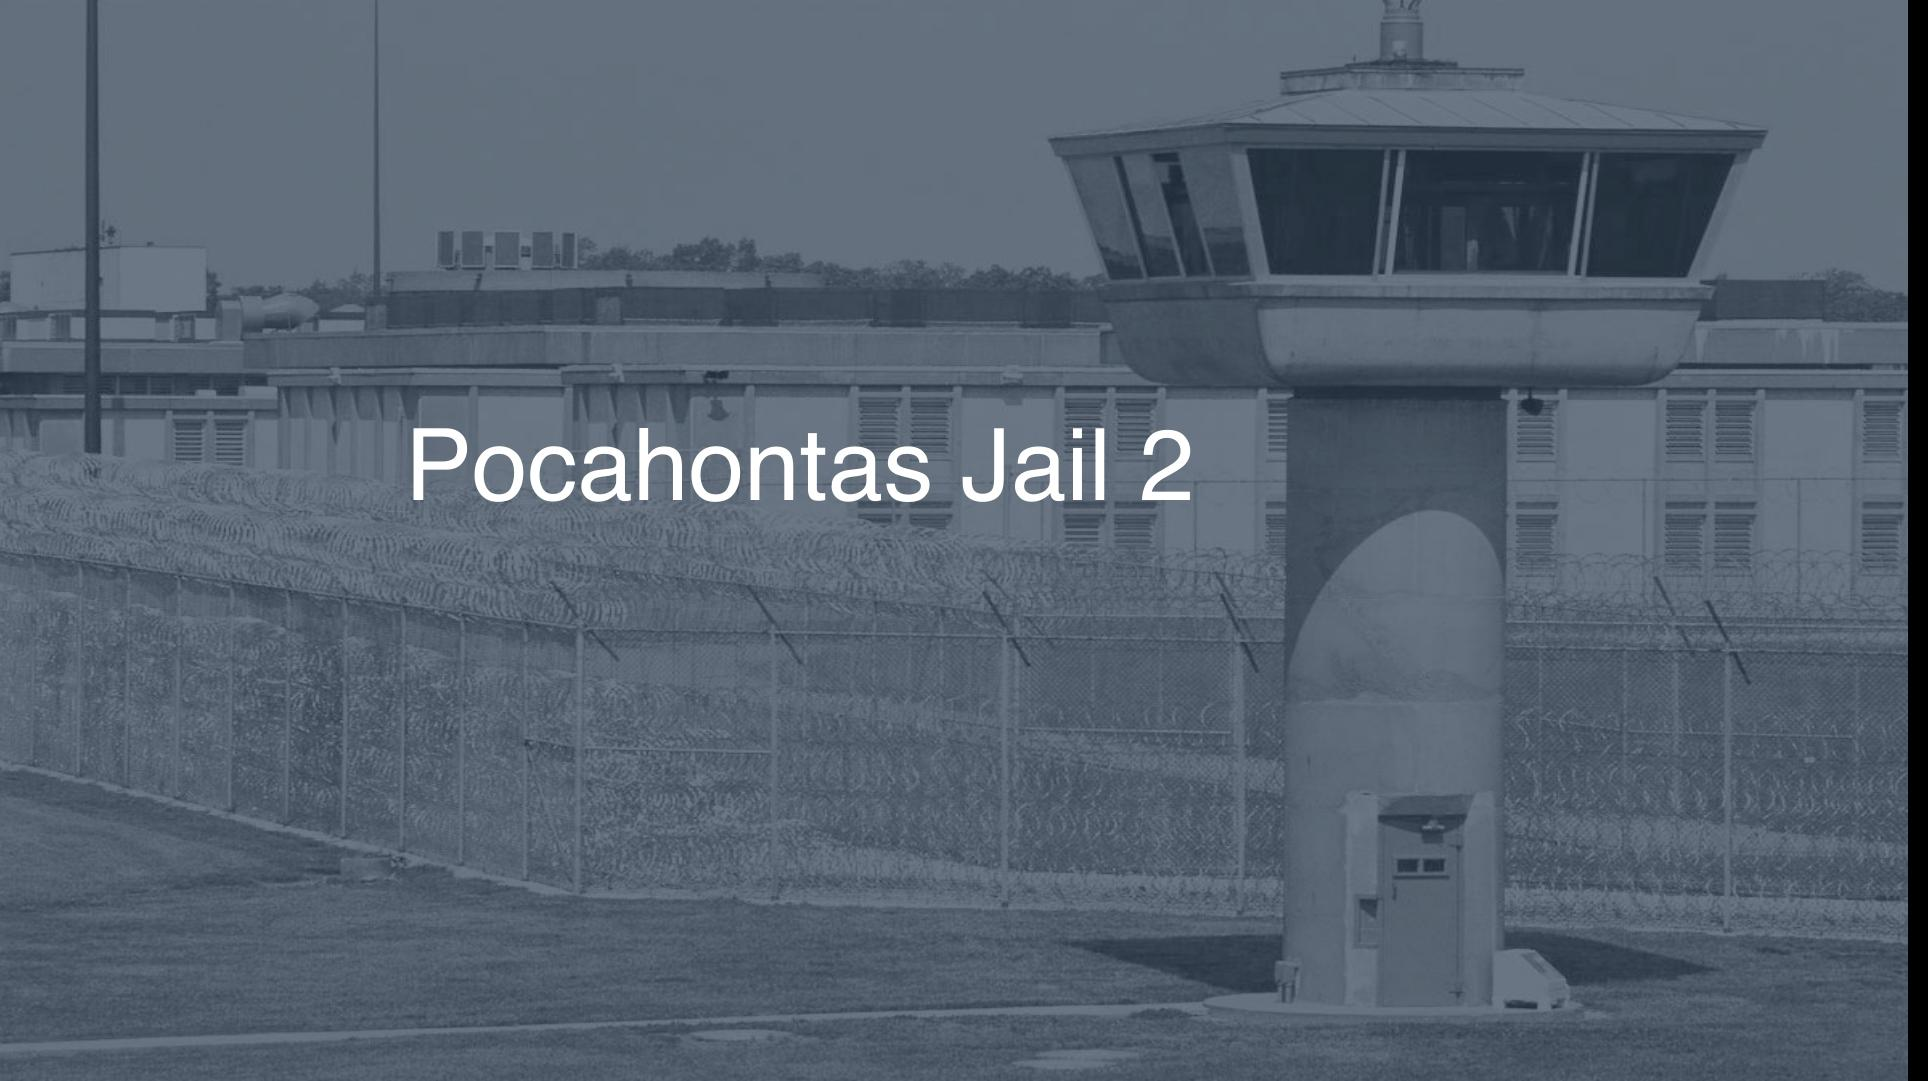 Pocahontas Jail   Pigeonly - Inmate Search, Locate & Connect